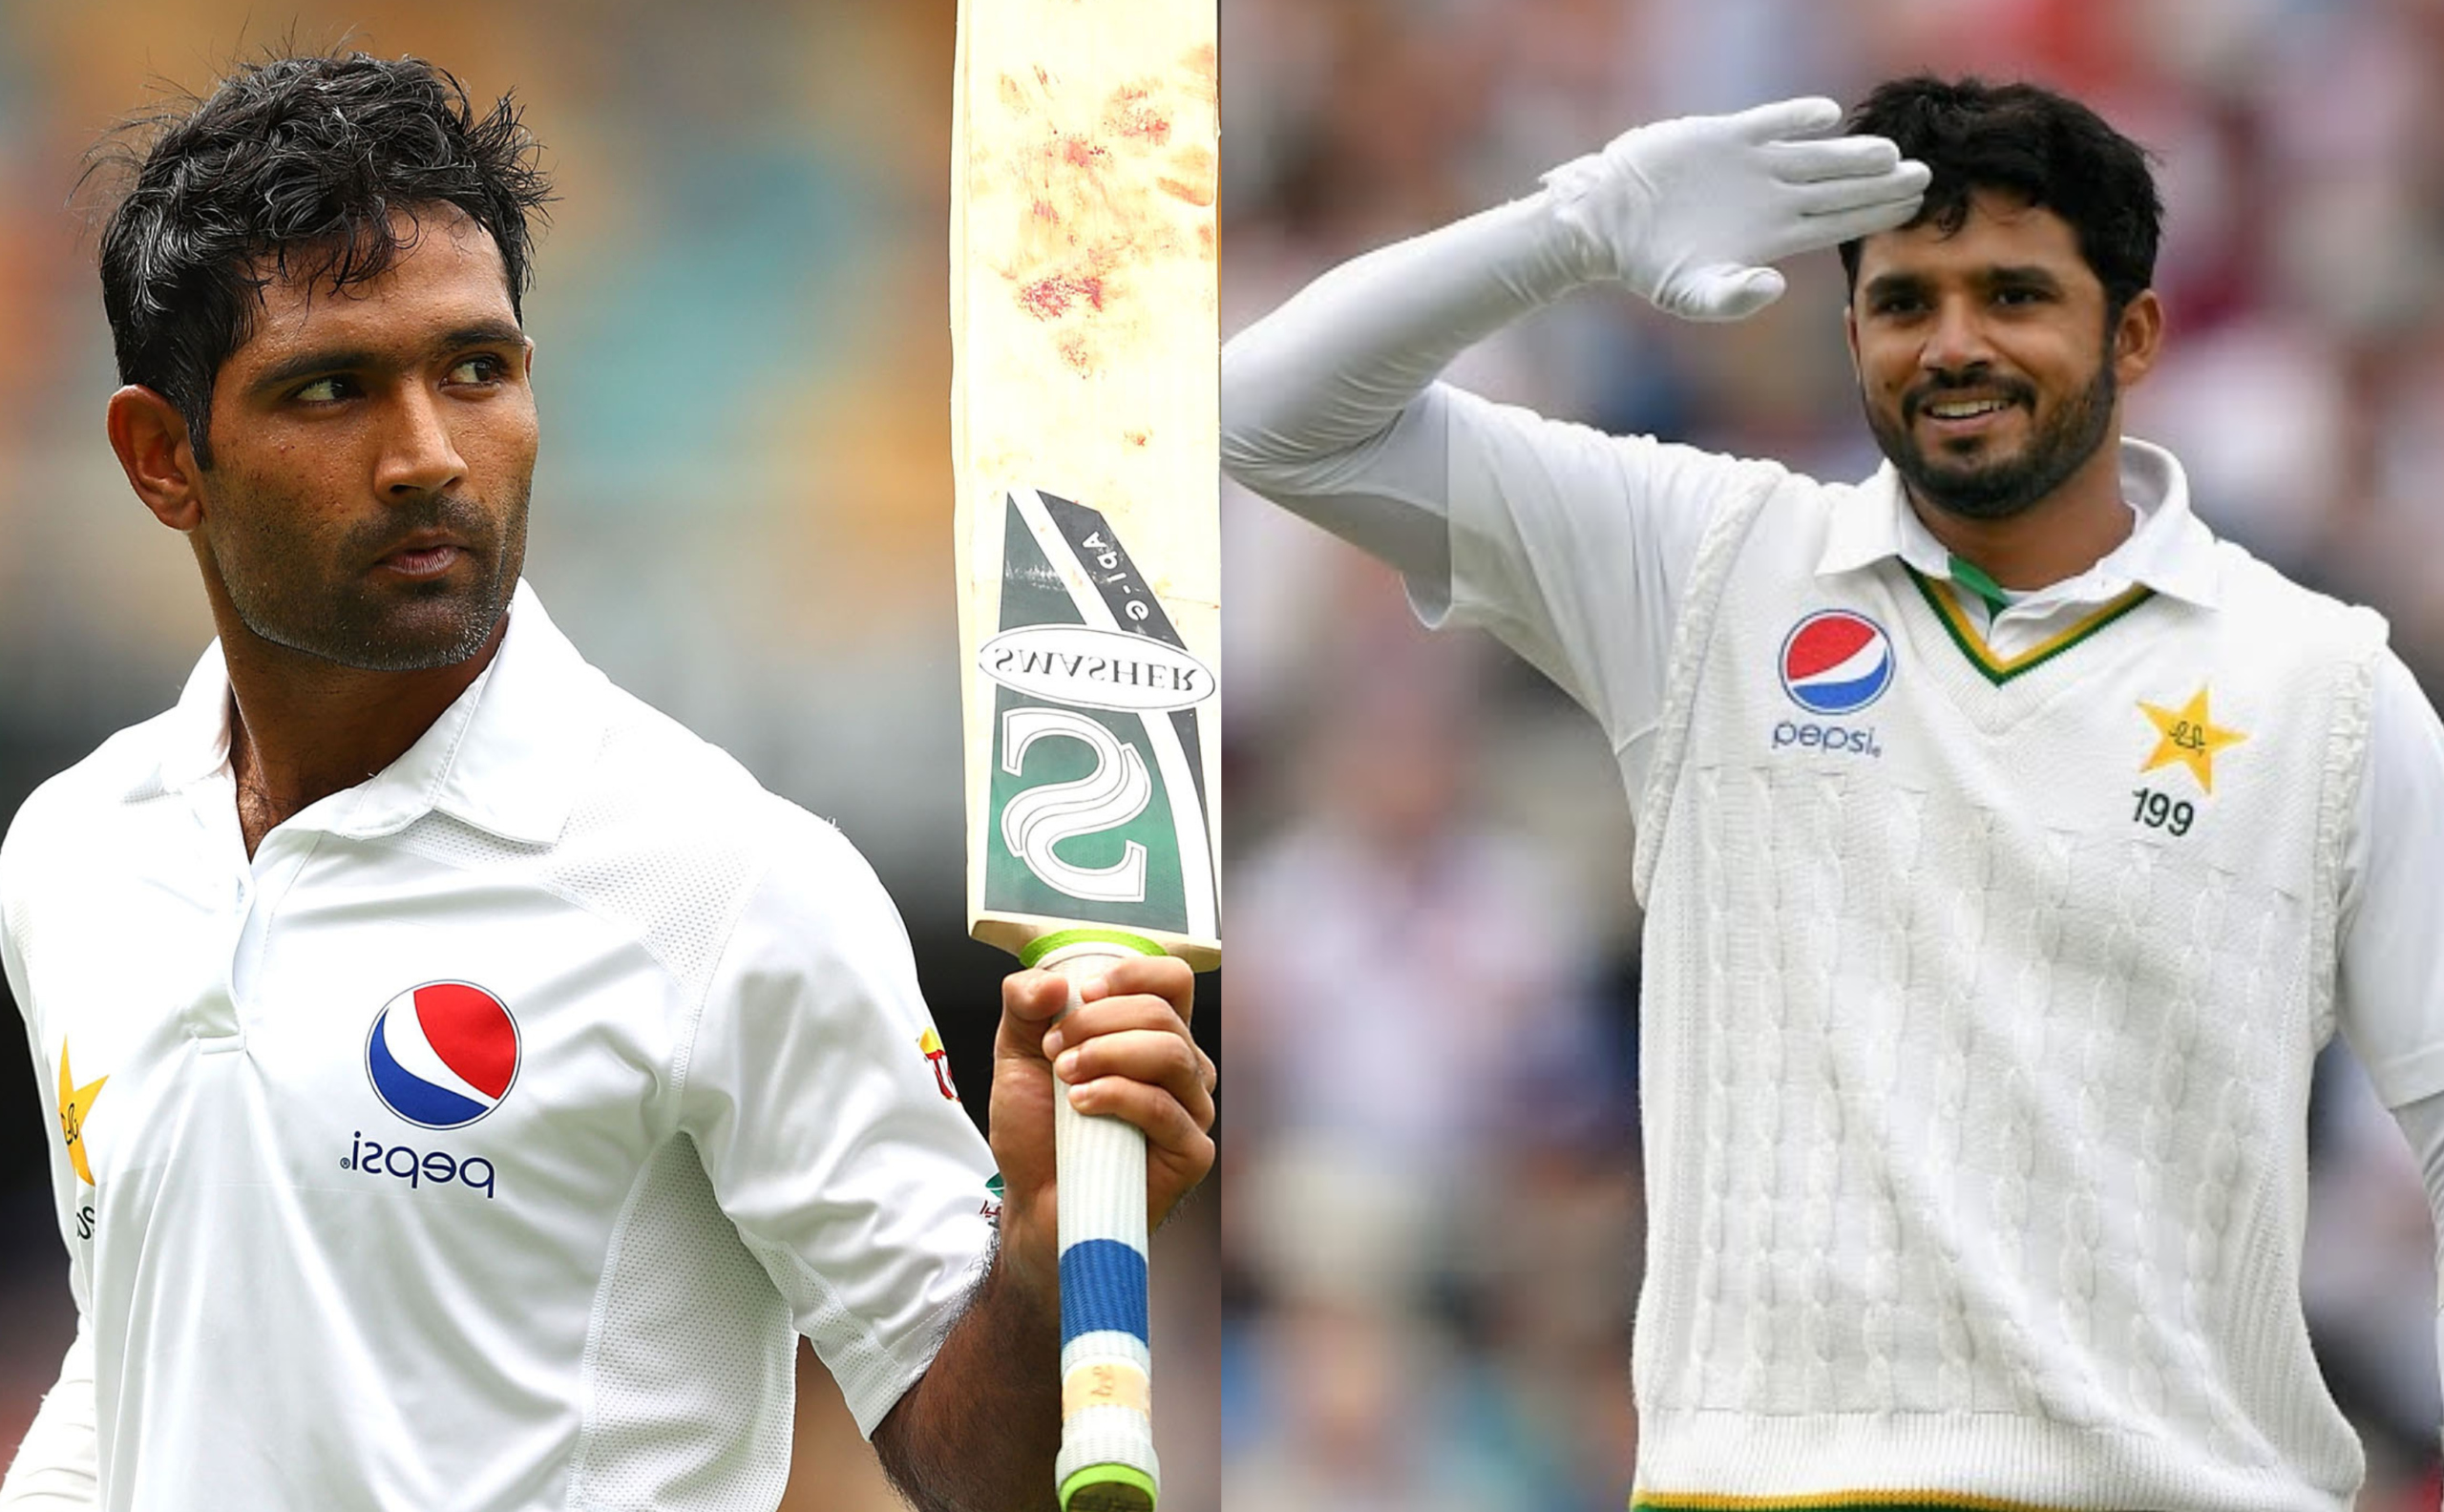 Javed Miandad prefers seeing Azhar Ali and Asad Shafiq in the Tests